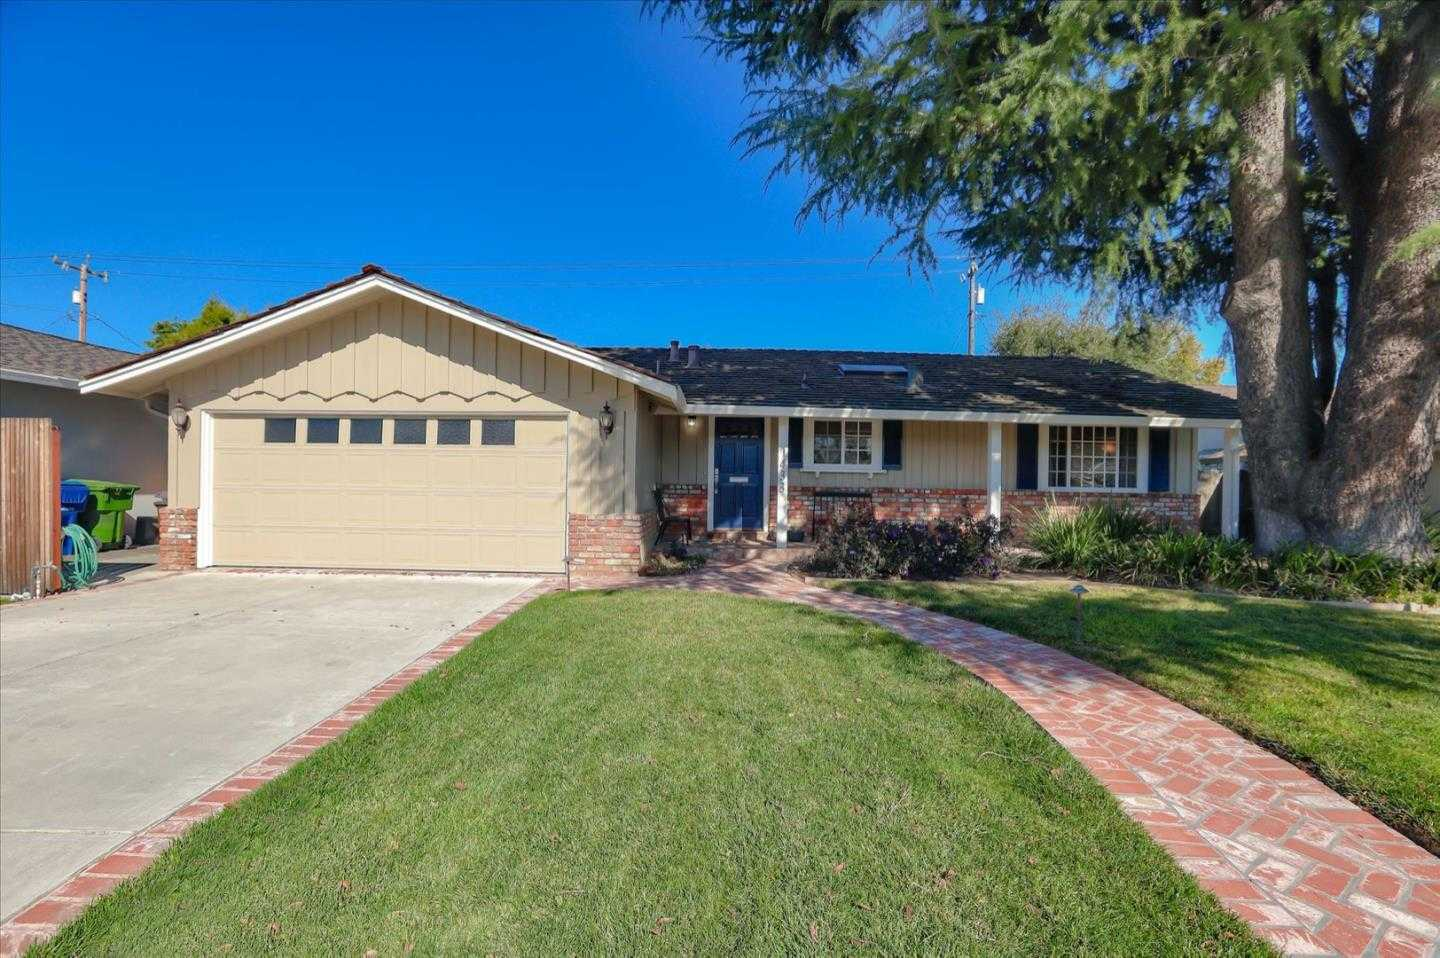 $1,275,000 - 3Br/2Ba -  for Sale in Campbell